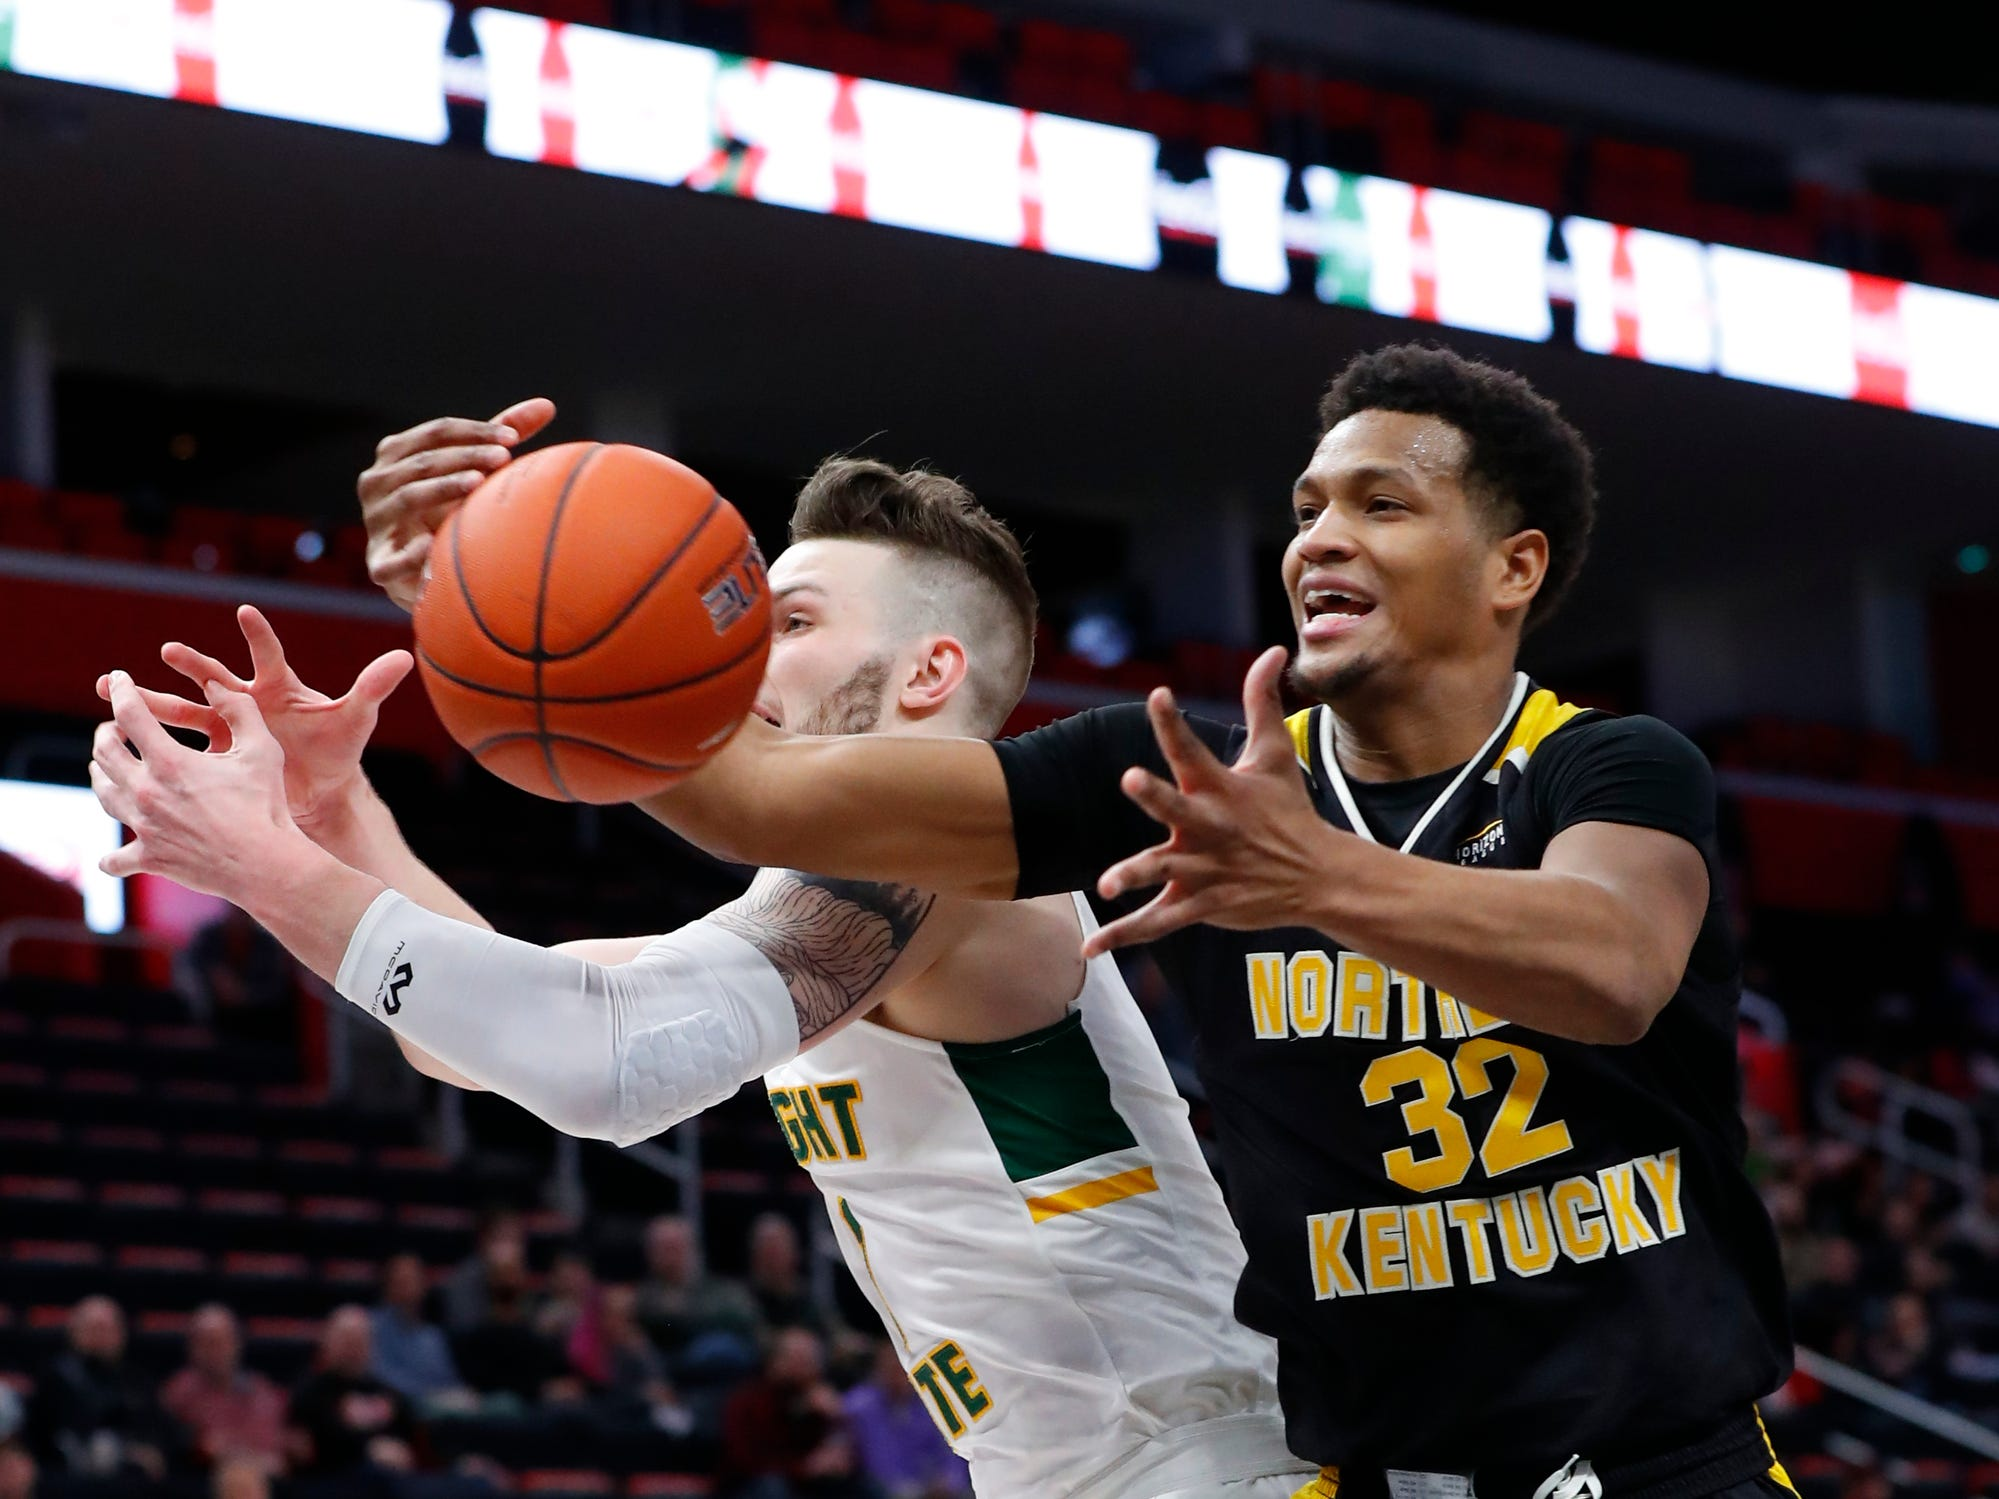 Northern Kentucky forward Dantez Walton (32) pulls down a rebound from Wright State forward Billy Wampler (1) in the first half of an NCAA men's basketball game in the Horizon League conference tournament championship in Detroit, Tuesday, March 12, 2019.